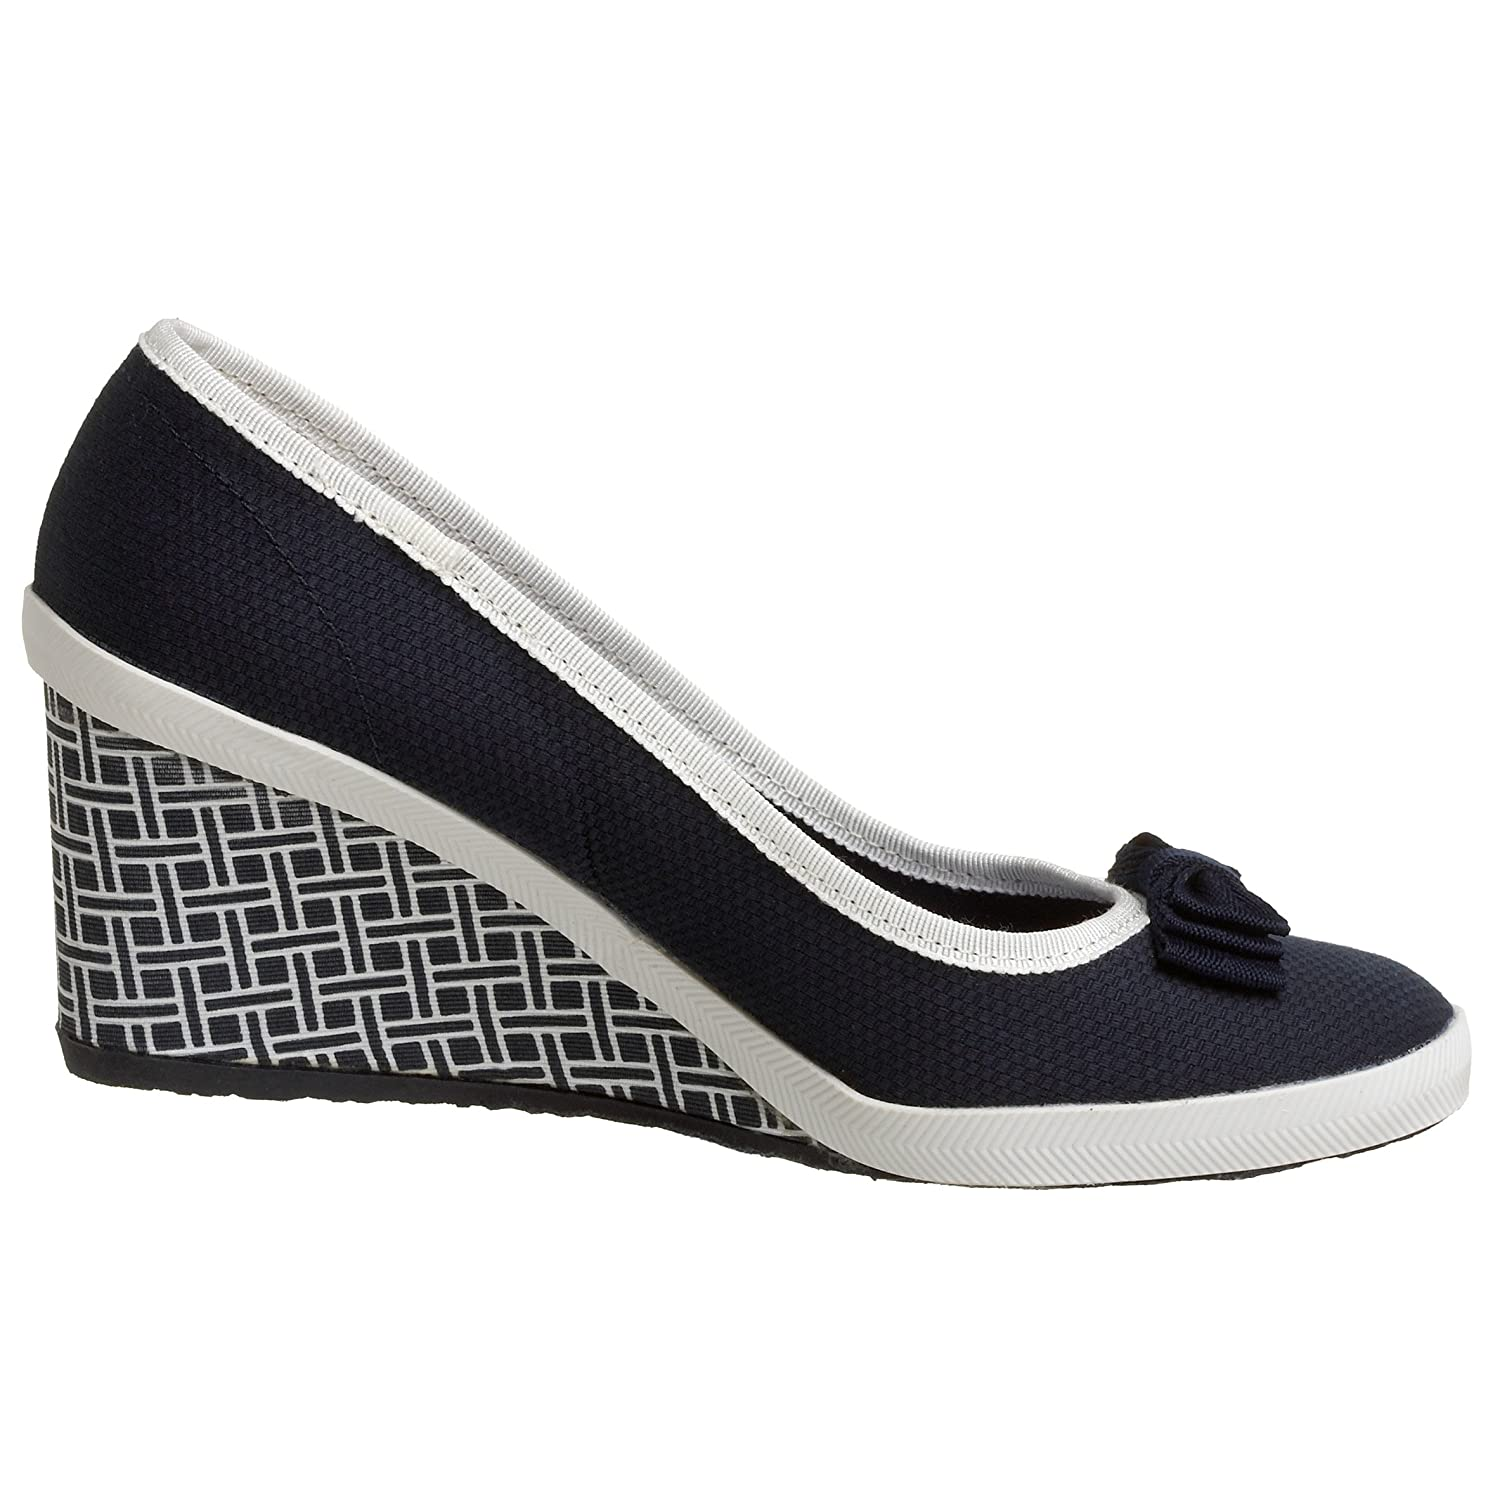 Keds Bliss Skimmer Wedge - Free Overnight Shipping &amp; Return Shipping: Endless.com from endless.com